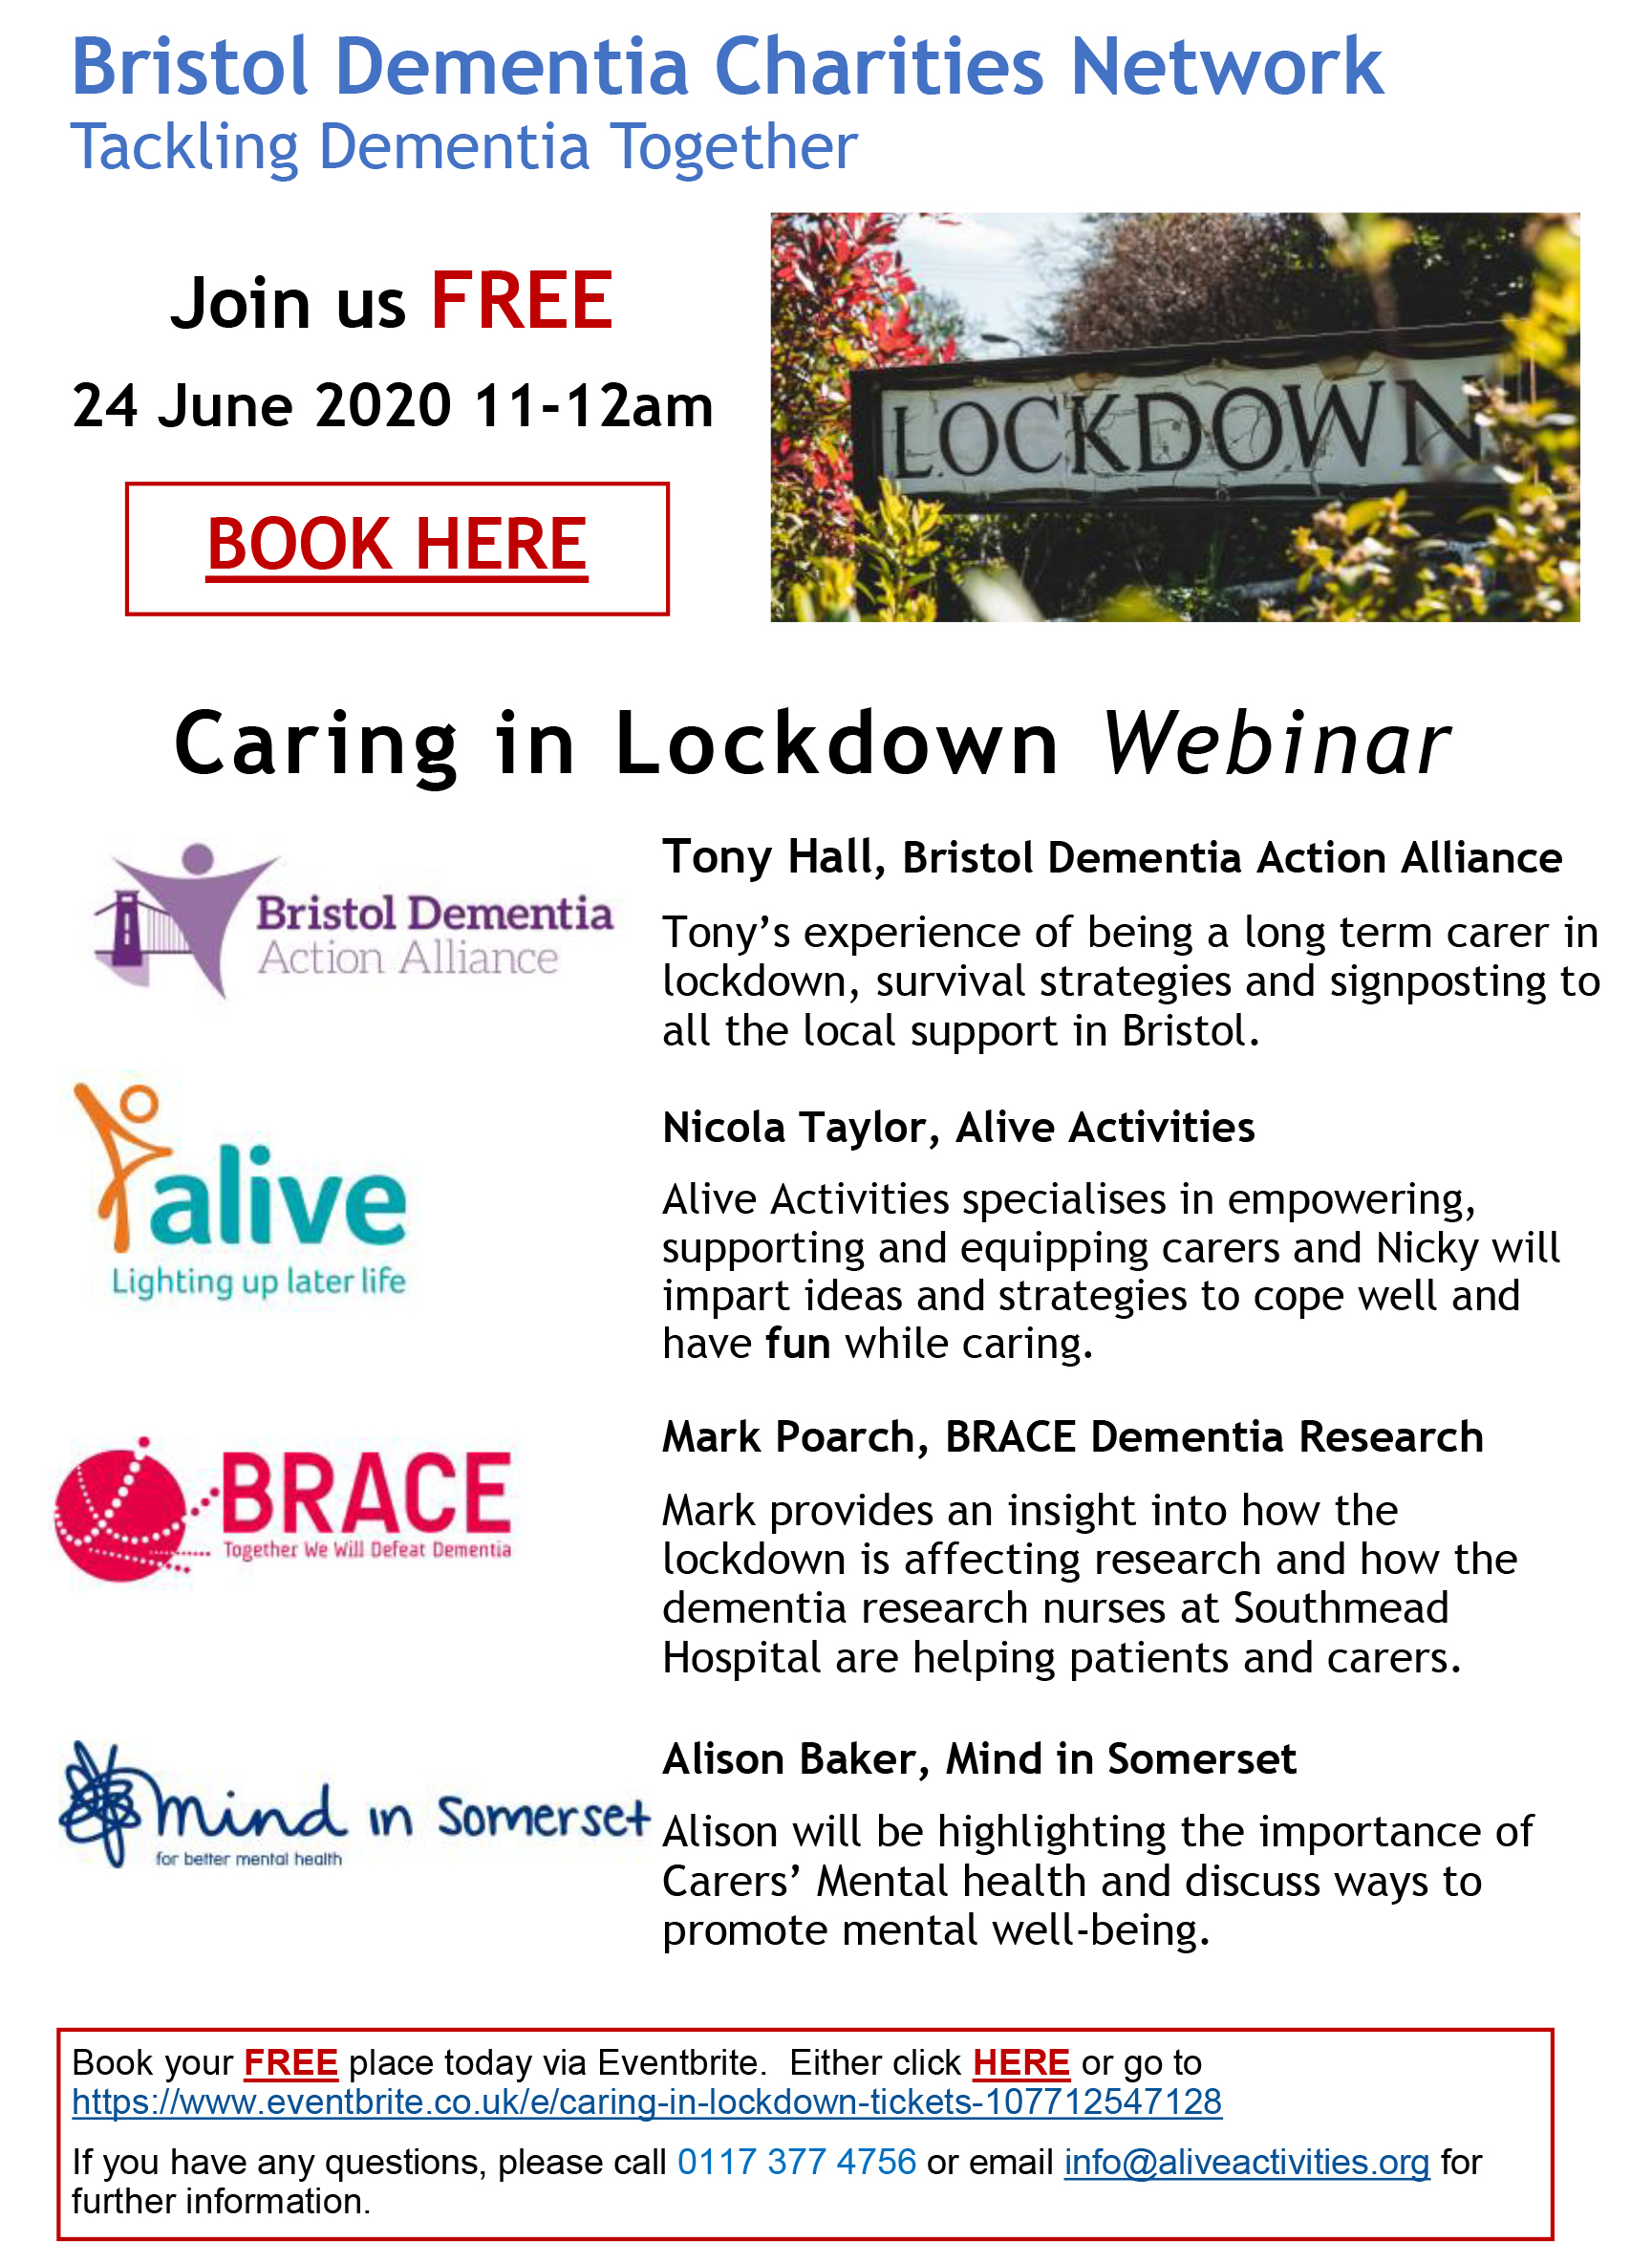 Lockdown support for Dementia patients and carers